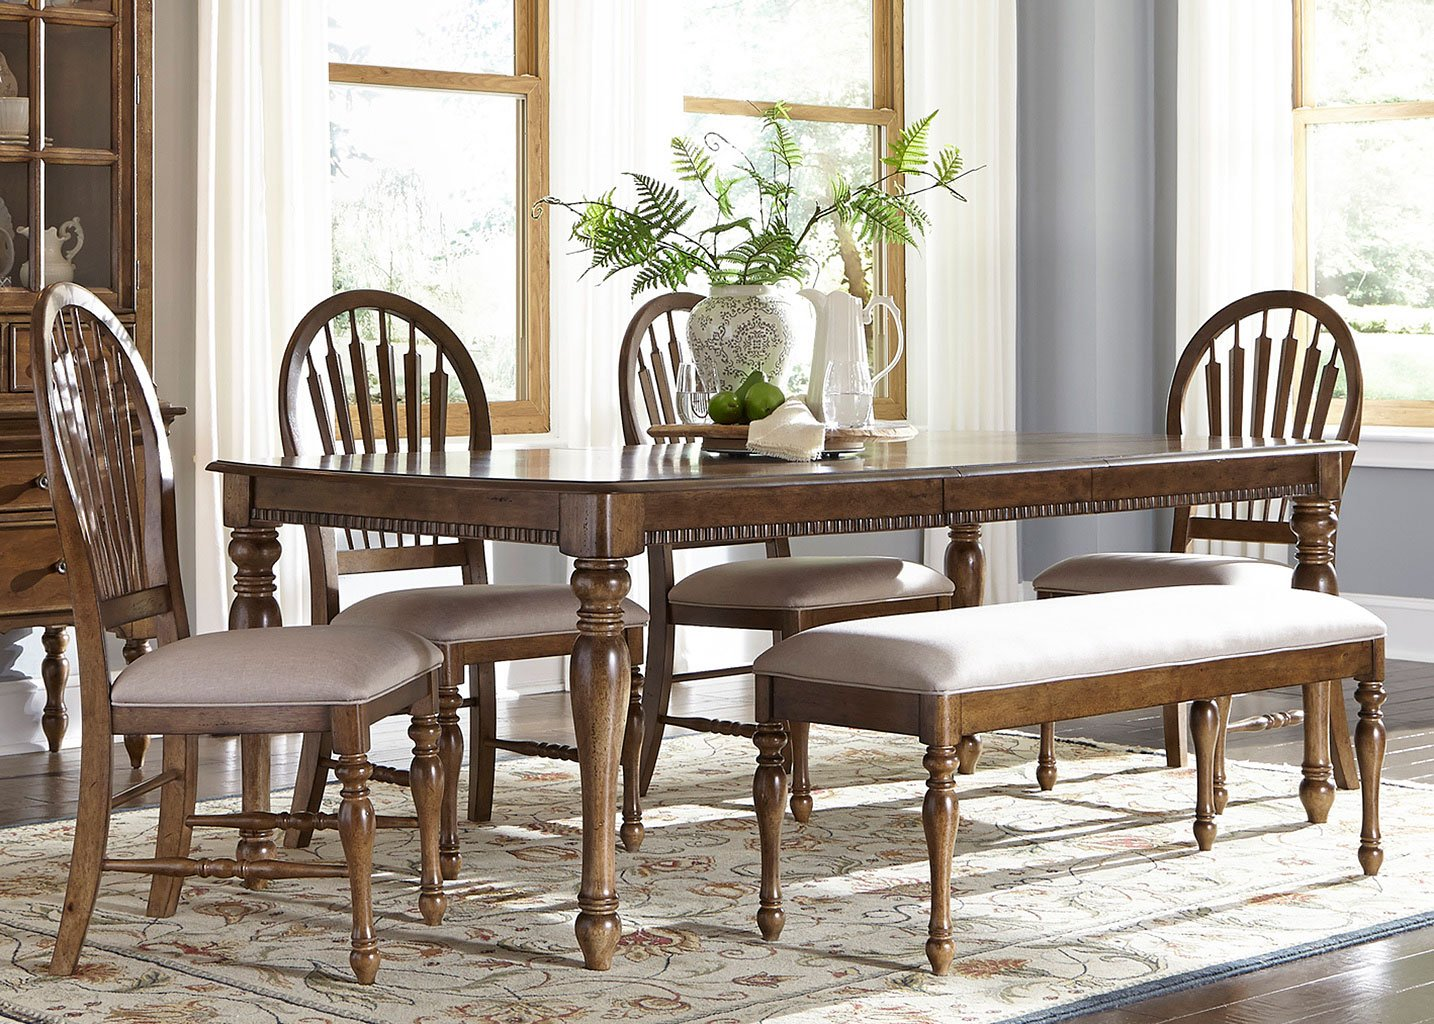 Fabulous Barrett Lakes Dining Room Set W Bench Liberty Furniture Caraccident5 Cool Chair Designs And Ideas Caraccident5Info